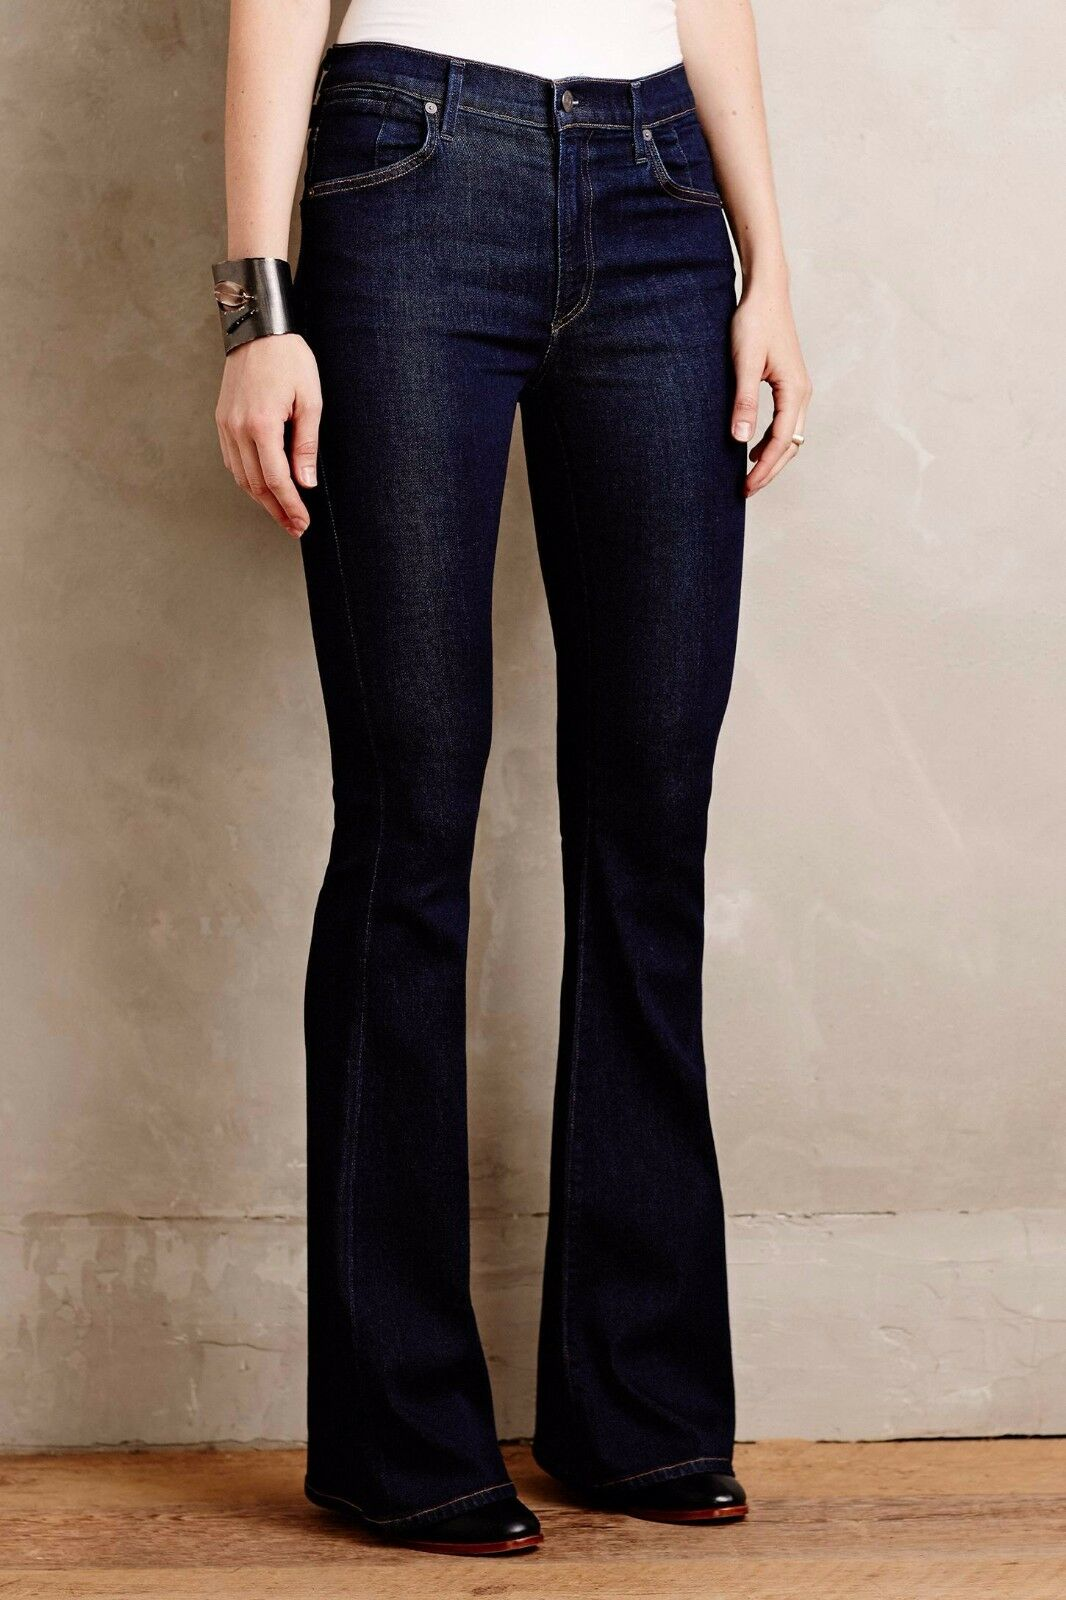 NWT CITIZENS OF HUMANITY FLEETWOOD SCULPT HIGH-RISE FLARE OZONE RINSE JEANS 27